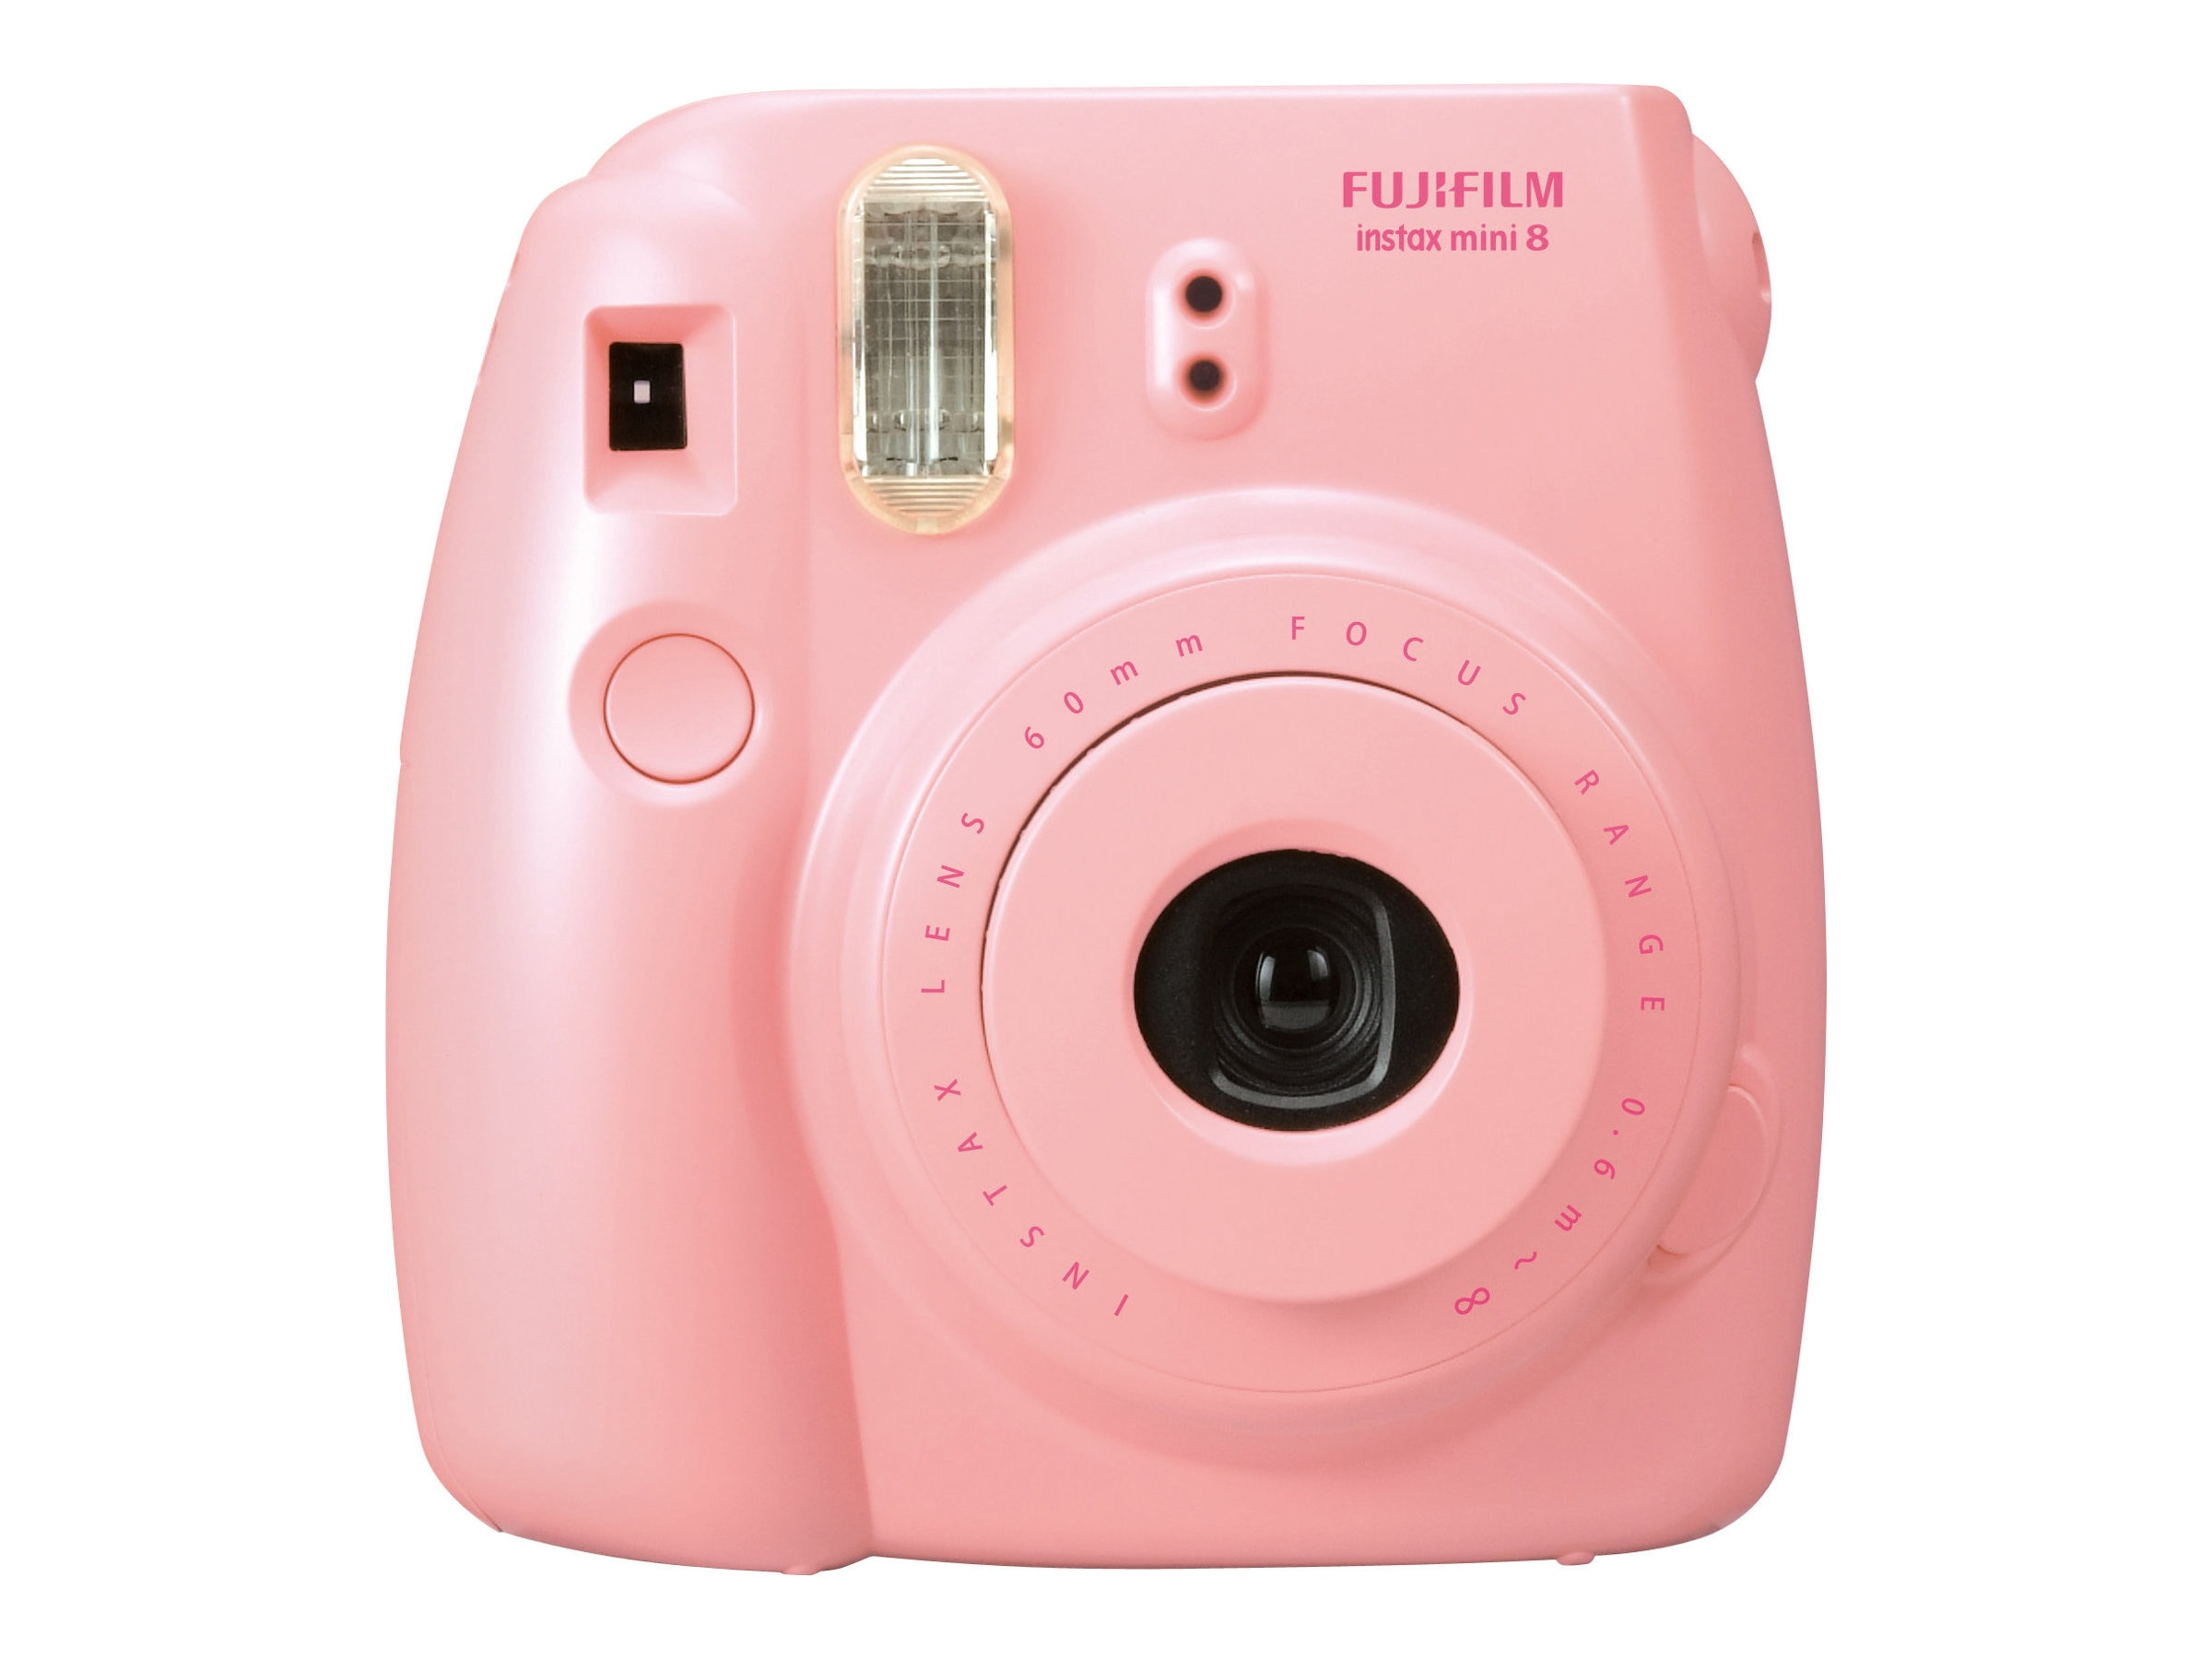 Fujifilm Instax Mini 8 Camera, Pink, 16273415